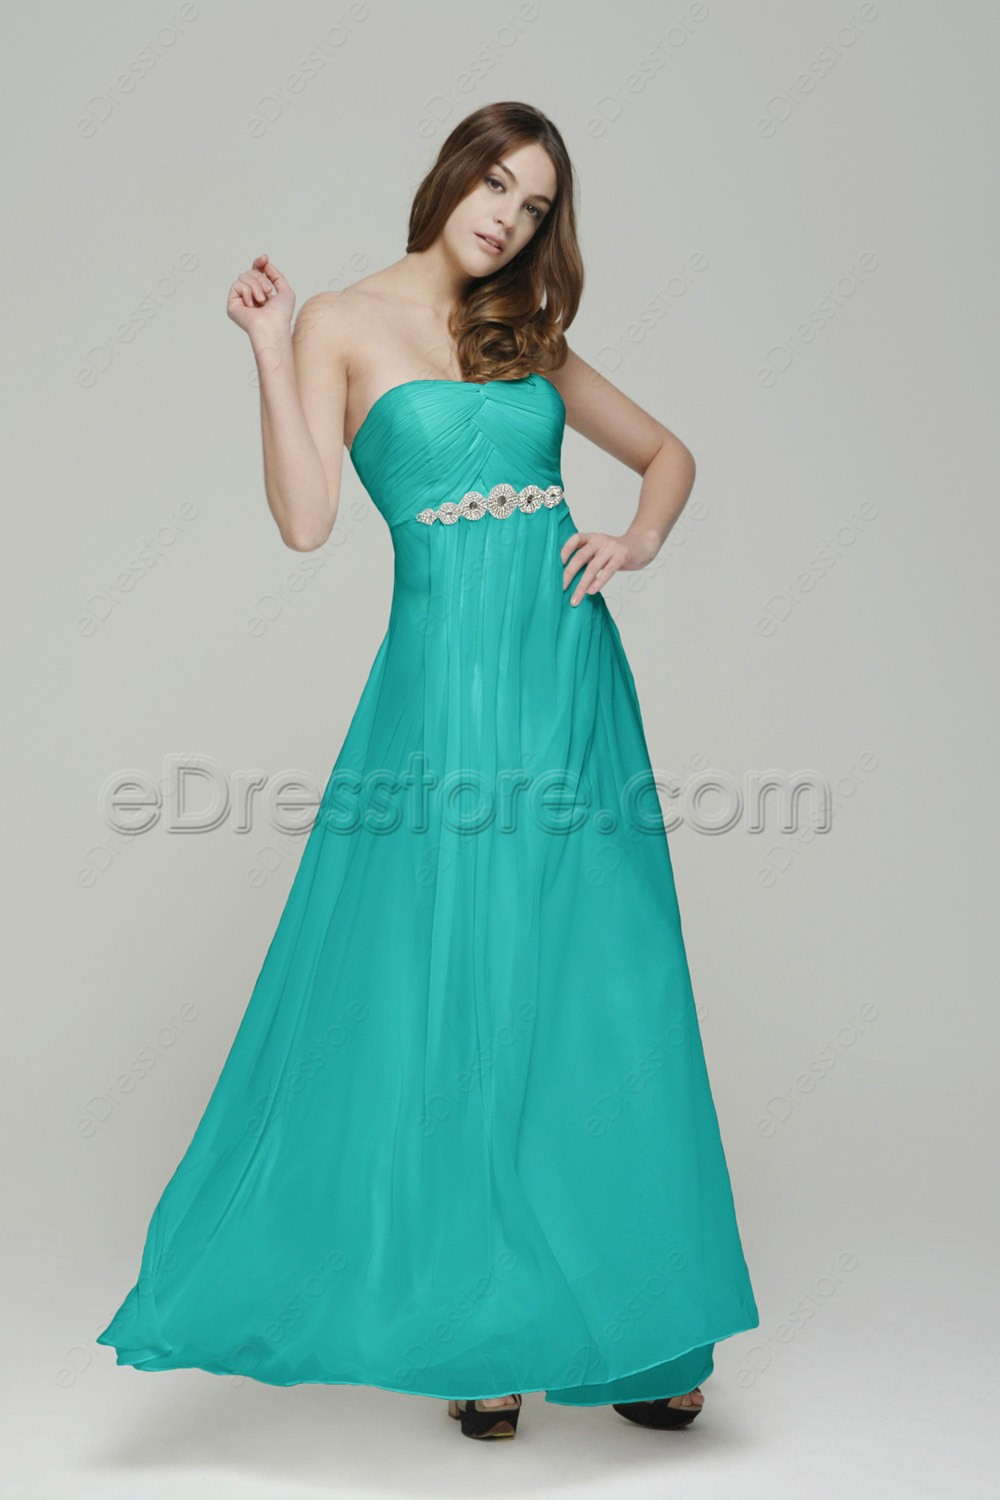 Jade green long bridesmaid dresses maid of honor dresses for Maid of honor wedding dresses